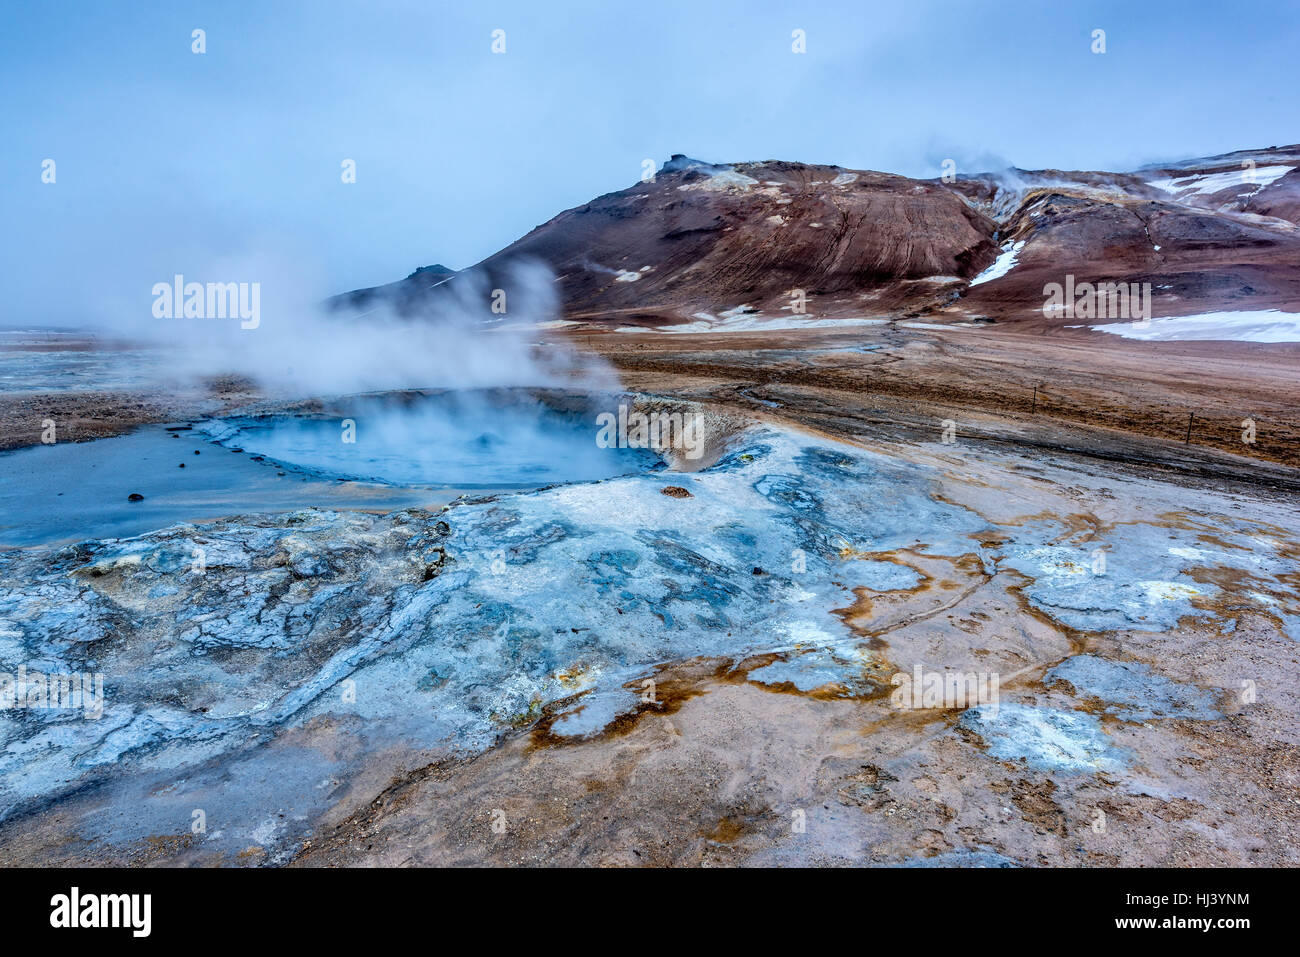 Natural steam rising from volcanic vents in the earth at Hverir in Iceland near Myvatn Lake - Stock Image